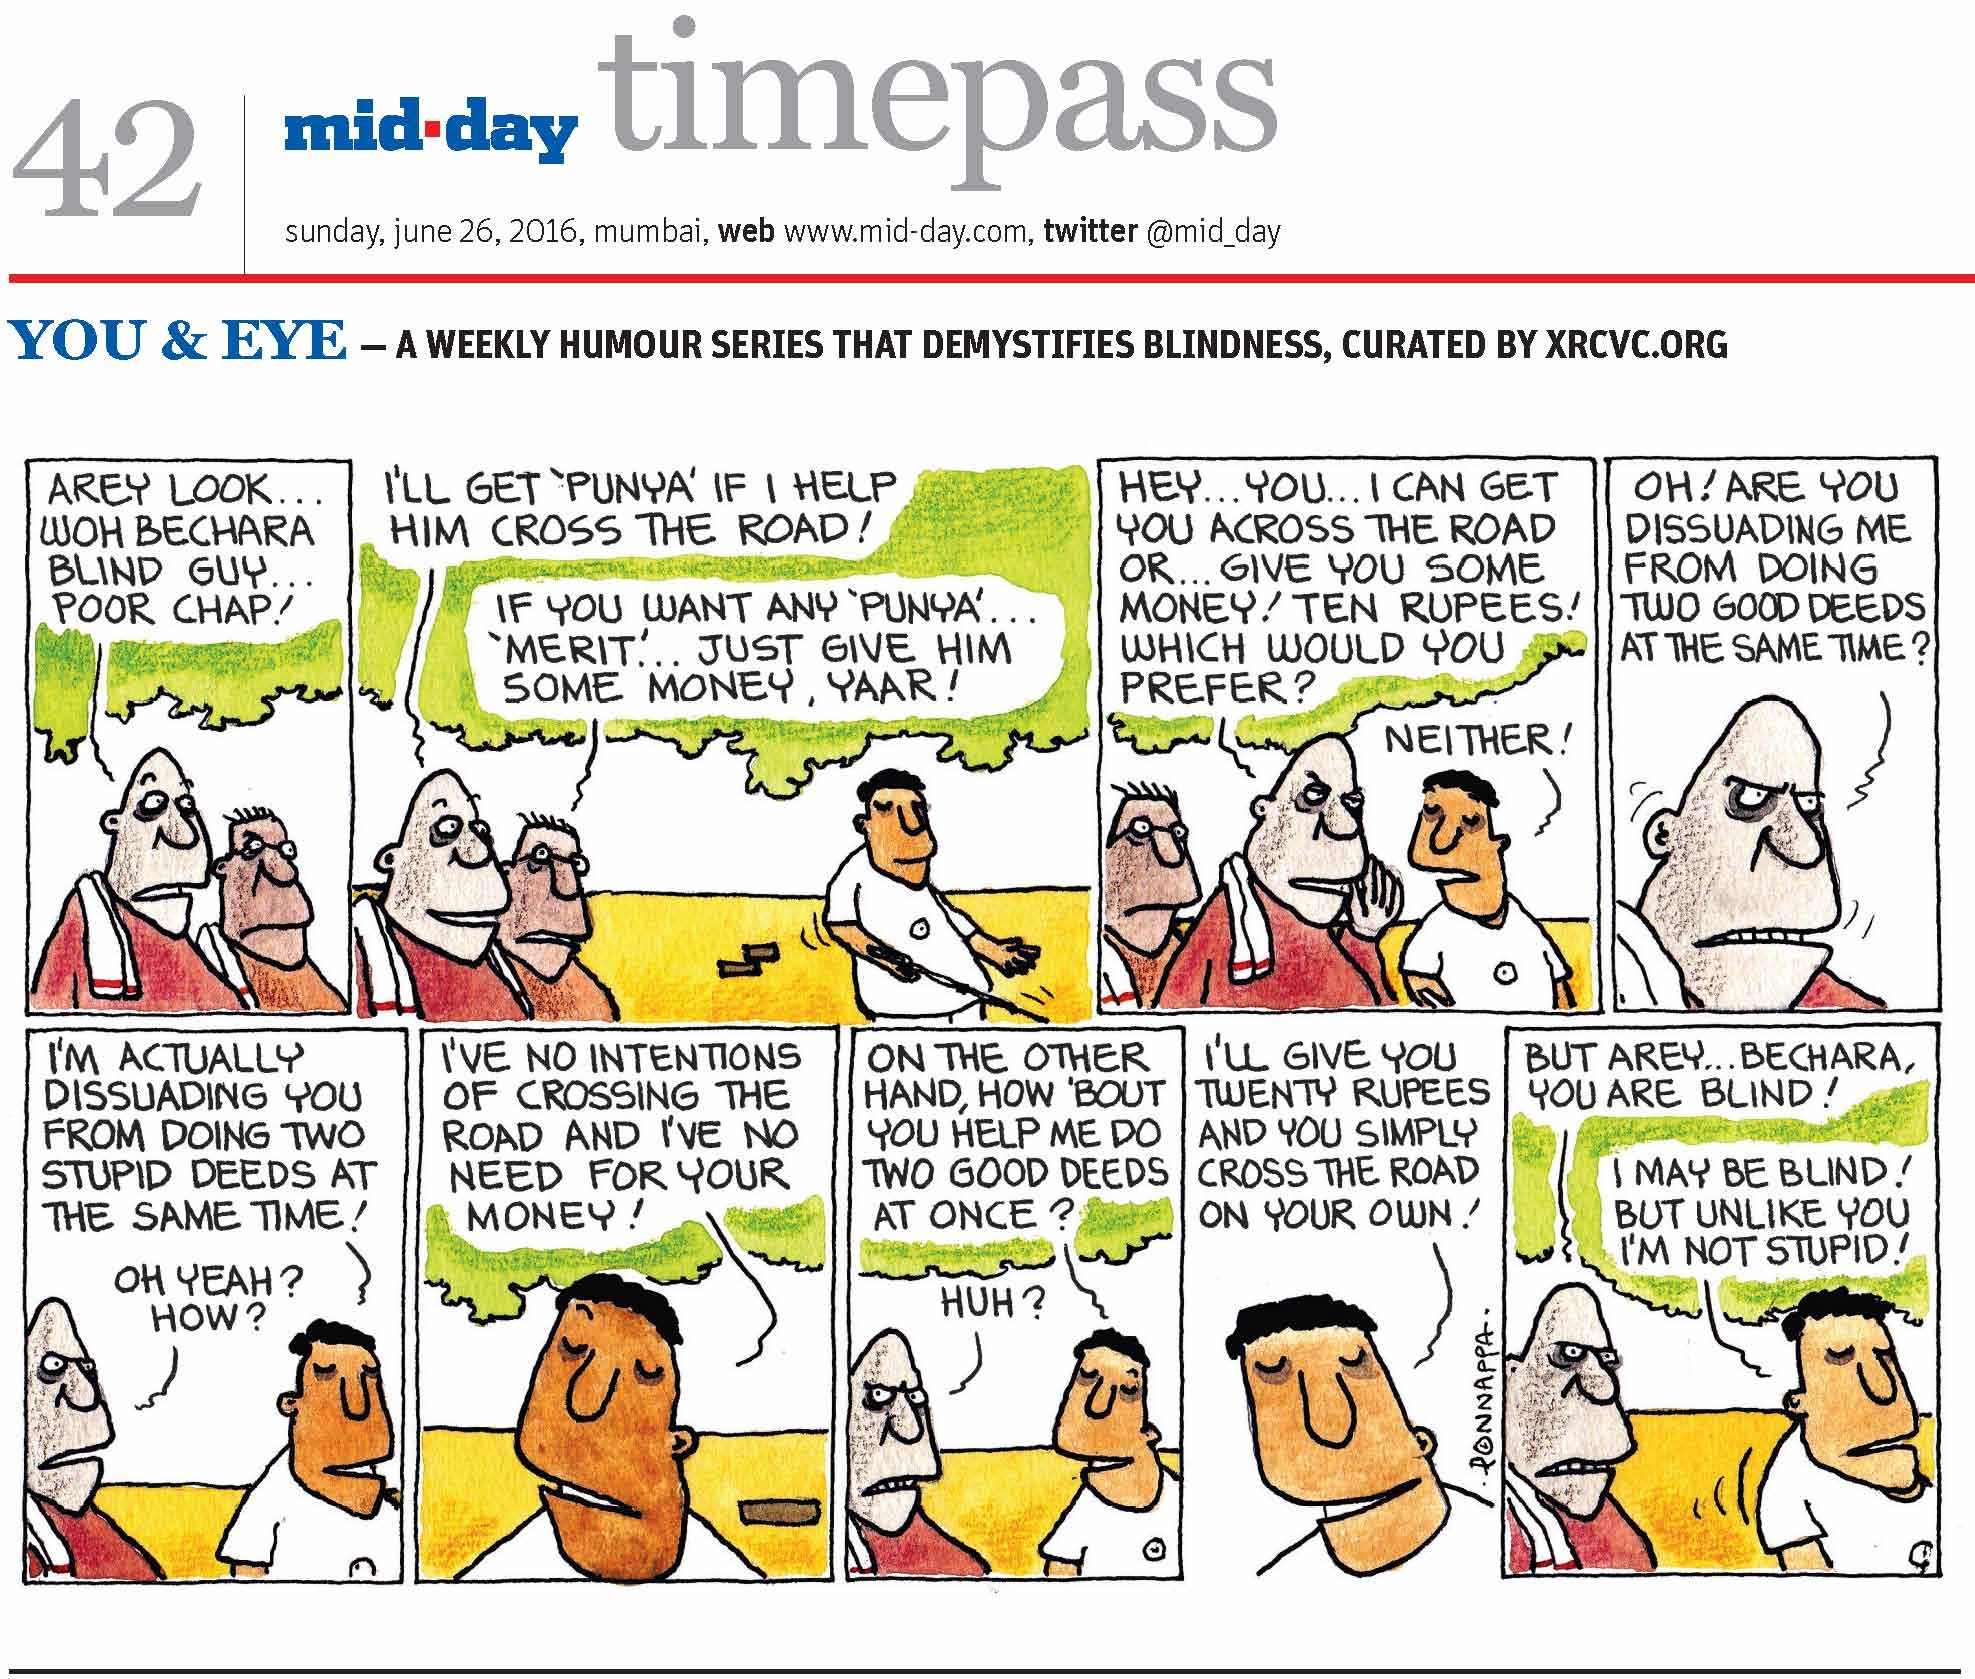 Page 42 mid-day timepass, sunday, june26, 2016, mumbai, web: www.mid-day.com, twitter @mid_day YOU & EYE – A WEEKLY HUMOUR SERIES THAT DEMYSTIFIES BLINDNESS, CURATED BY XRCVC.ORG  Image description: A cartoon strip with 9 frames…  Frame 1: (A man without spectacles standing next to a man with spectacles looking in the same direction) Man 1 (without specs): Arey look… Woh bechara blind guy… Poor chap!   Frame 2: (The two men facing the visually impaired man – BG – as he walks with his cane) Man 1 (without specs): I'll get 'punya' if I help him cross the road! Man 2 (with specs): If you want any 'punya'… 'merit'… just give him some money, yaar!   Frame 3:  (The two men approach BG) Man 1 (without specs): Hey… You… I can get you across the road or… give you some money! Ten rupees! Which would you prefer? BG: Neither!   Frame 4: (A close-up of the man without spectacles, who seems enraged) Man 1 (without specs): Oh! Are you dissuading me from doing two good deeds at the same time?   Frame 5: (BG and the man without spectacles) BG: I'm actually dissuading you from doing two stupid deeds at the same time! Man 1 (without specs): Oh yeah? How?   Frame 6: (A close-up of a straight-faced BG) BG: I've no intentions of crossing the road and I've no need for your money!   Frame 7: (BG and the man without spectacles) BG: On the other hand, how 'bout you help me do two good deeds at once? Man 1 (without specs): Huh?  Frame 8: (A close-up of BG smiling) BG: I'll give you twenty rupees and you simply cross the road on your own!   Frame 9: (The man without spectacles and BG) Man 1 (without specs): But arey… bechara, you are blind! BG: I may be blind! But unlike you I'm not stupid!  (Signed Ponnappa, in Frame 8)